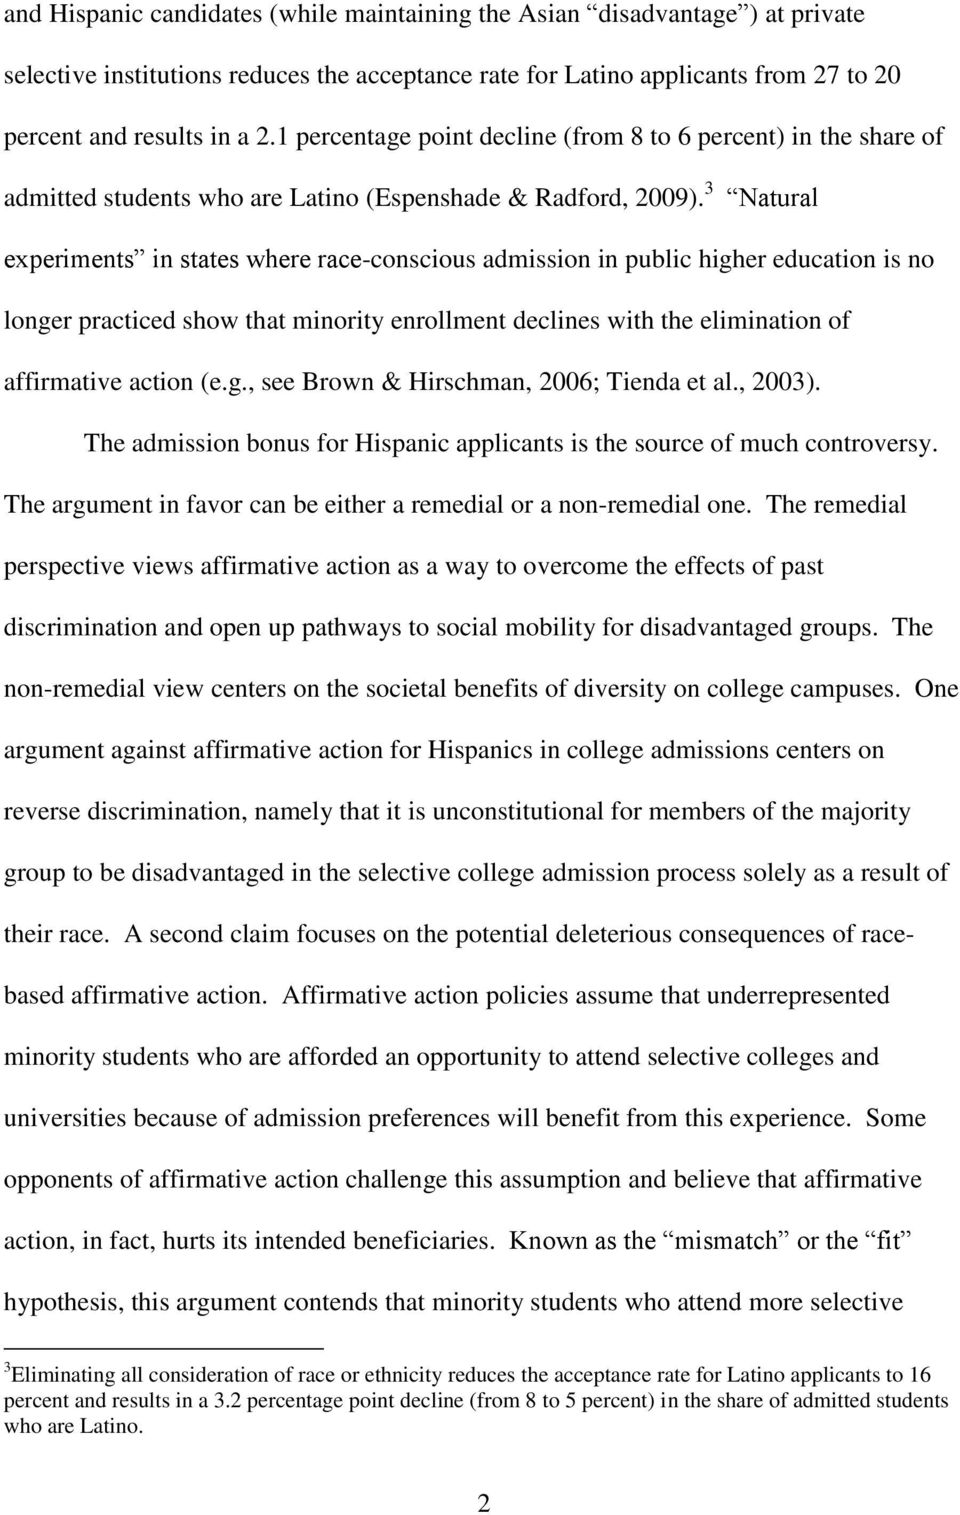 3 Natural experiments in states where race-conscious admission in public higher education is no longer practiced show that minority enrollment declines with the elimination of affirmative action (e.g., see Brown & Hirschman, 2006; Tienda et al.